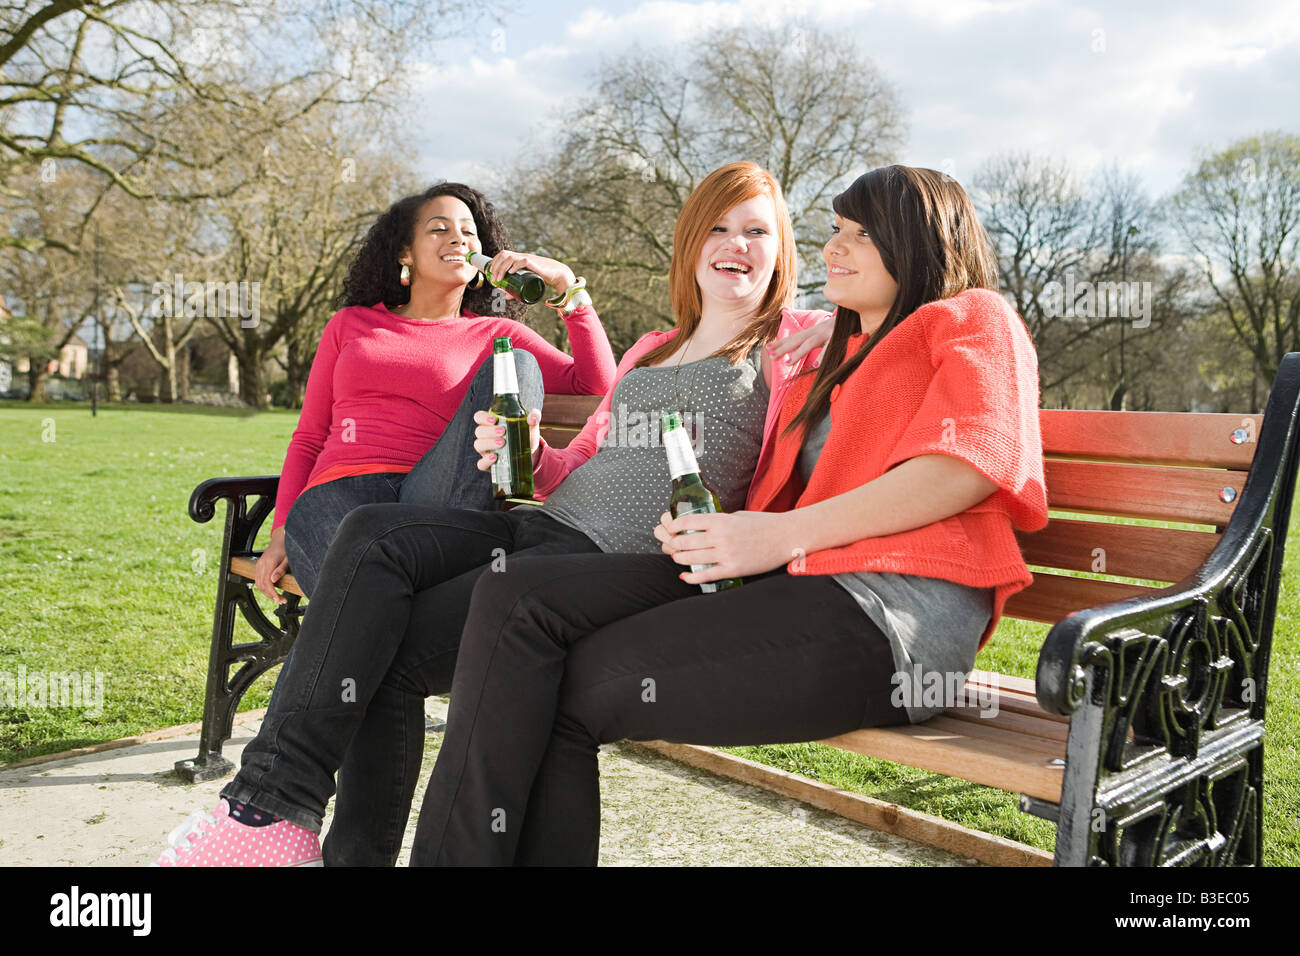 Girls on bench drinking beer - Stock Image